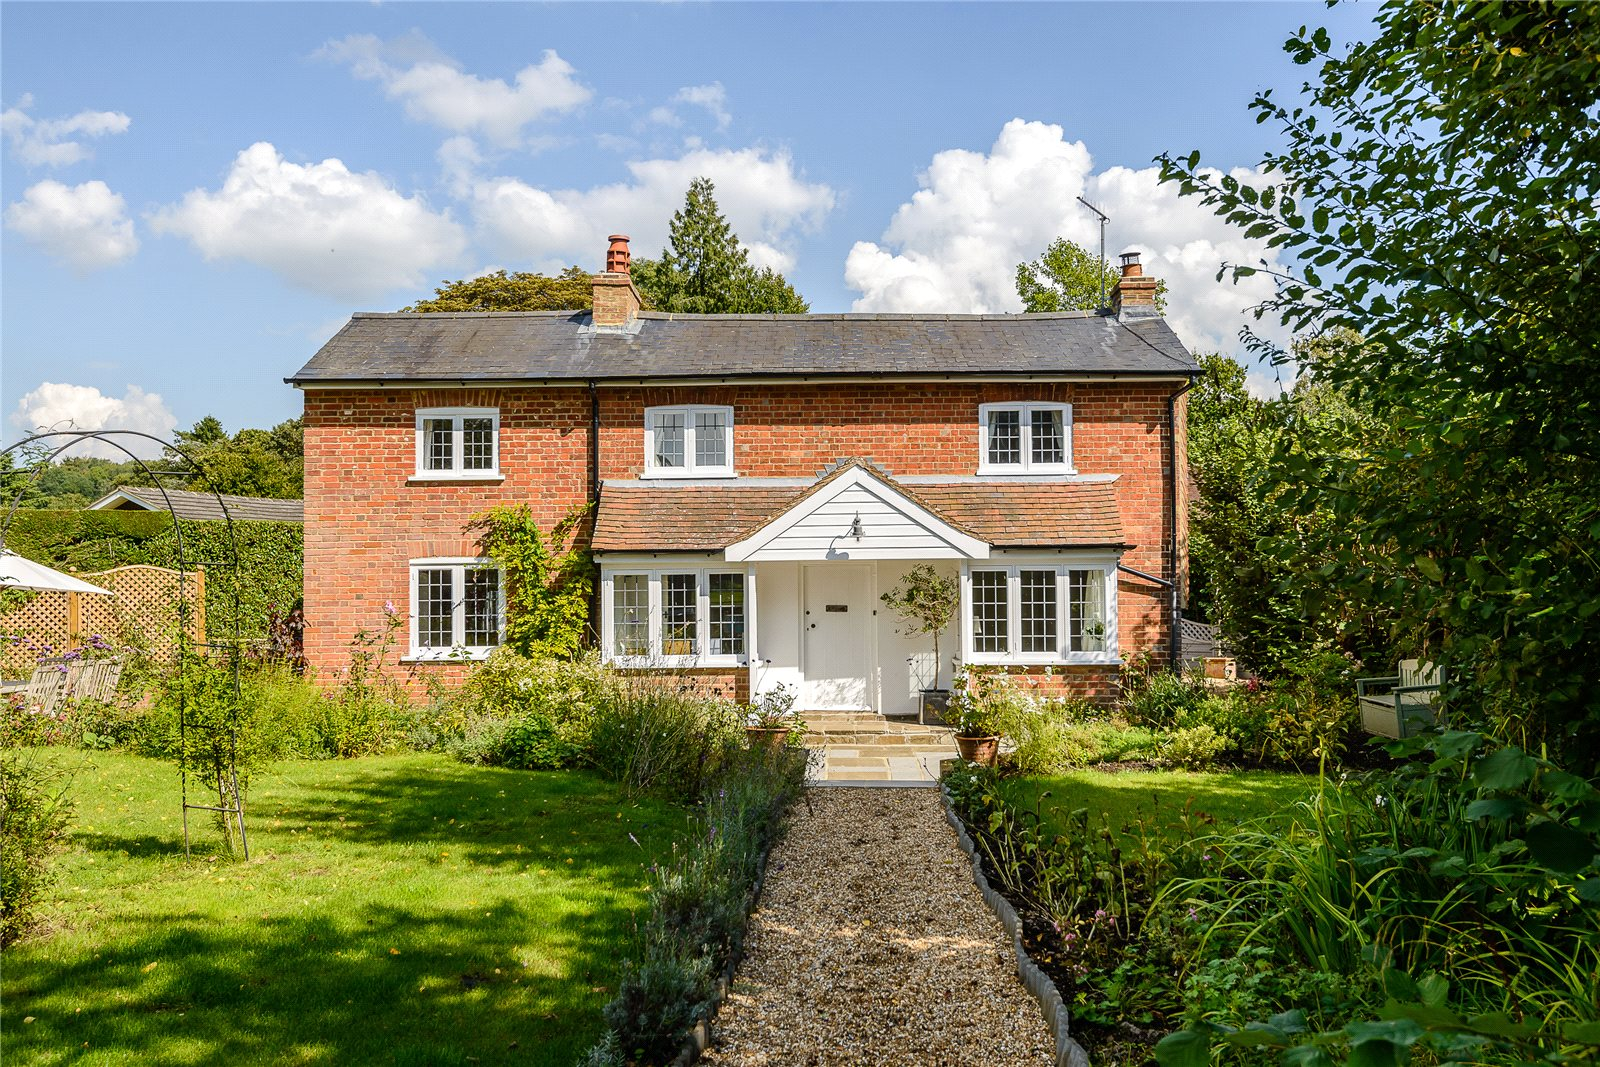 Single Family Home for Sale at Tannery Lane, Gosden Common, Guildford, Surrey, GU5 Guildford, England